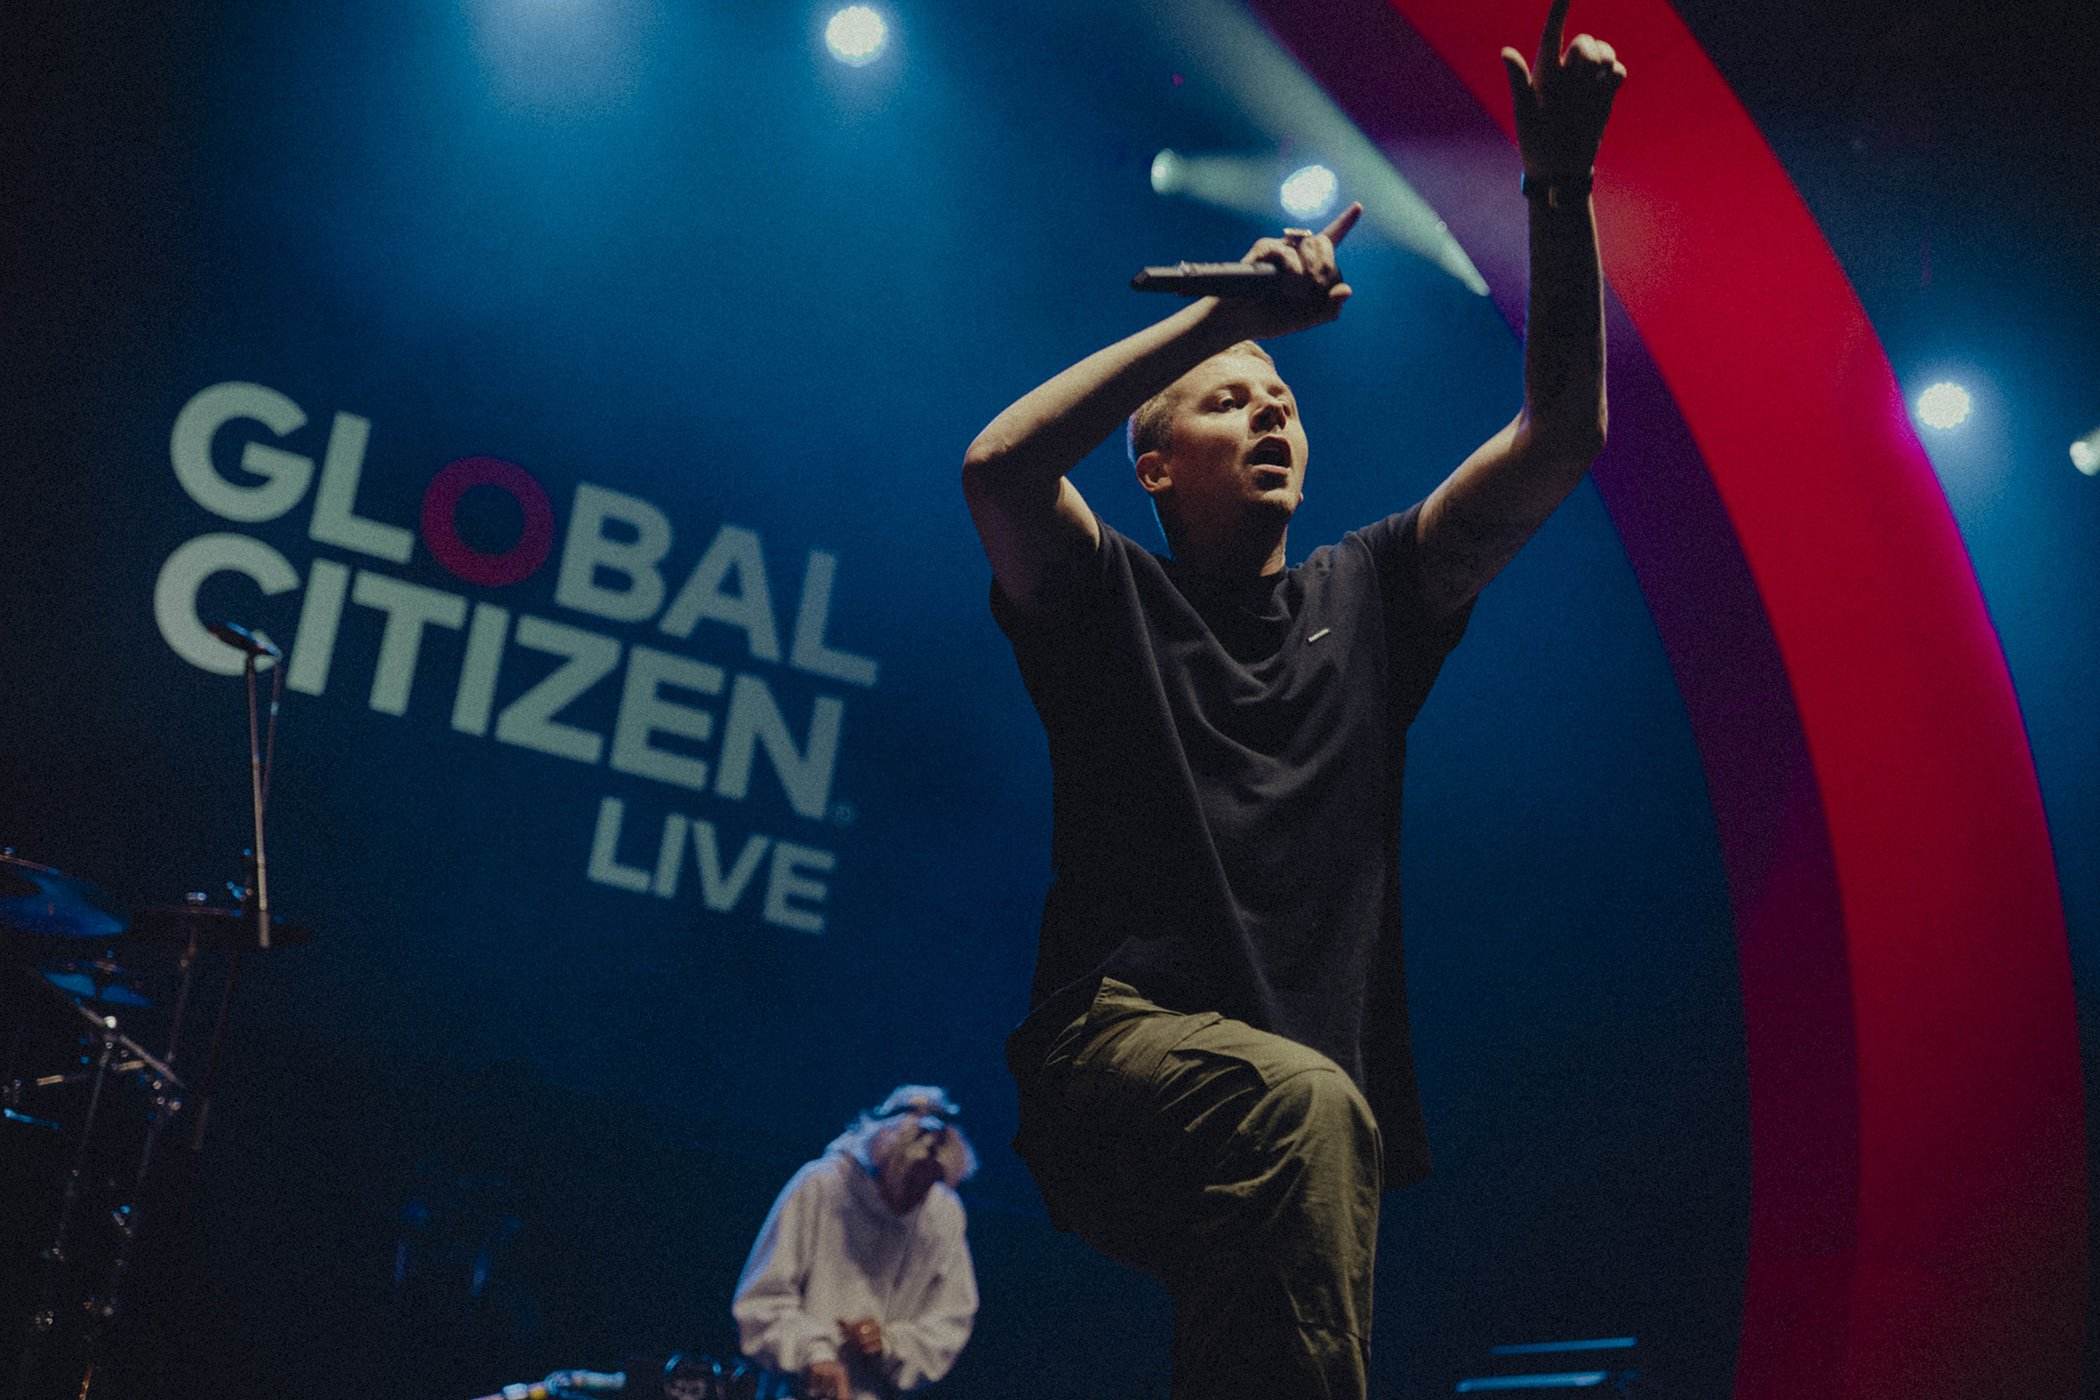 GCLiveLondon_ProfessorGreen_Emma Viola Lilja for Global Citizen_010.jpg